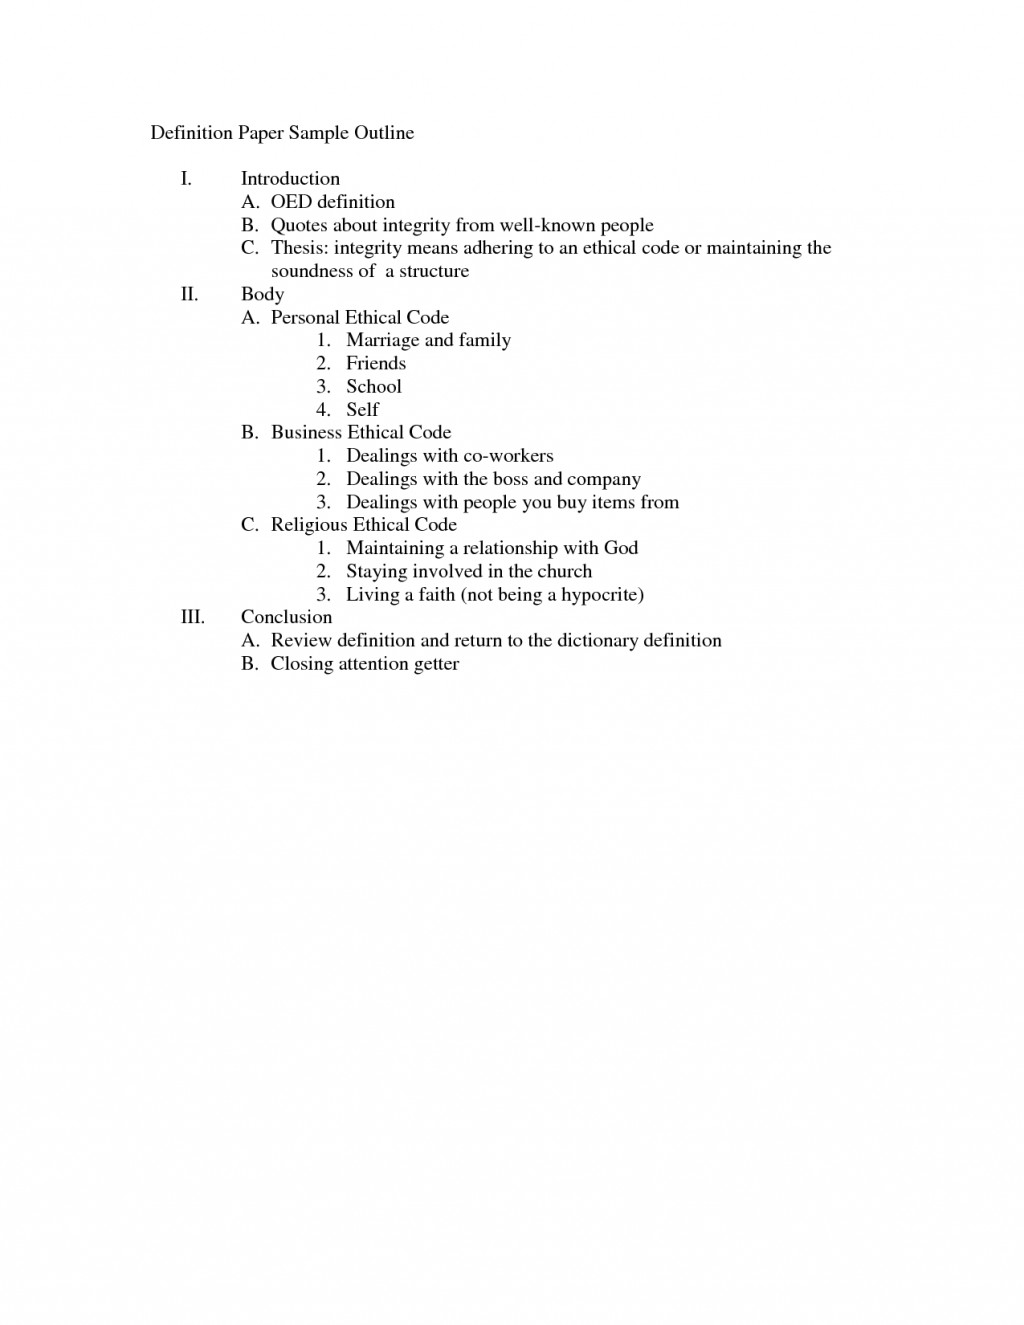 005 Definition Essay Outline Example Best Photos Of Blog Template Format Online 4 Apa Word For College Doc Mla Middle School High Unique Writing Pdf Hero Success Large